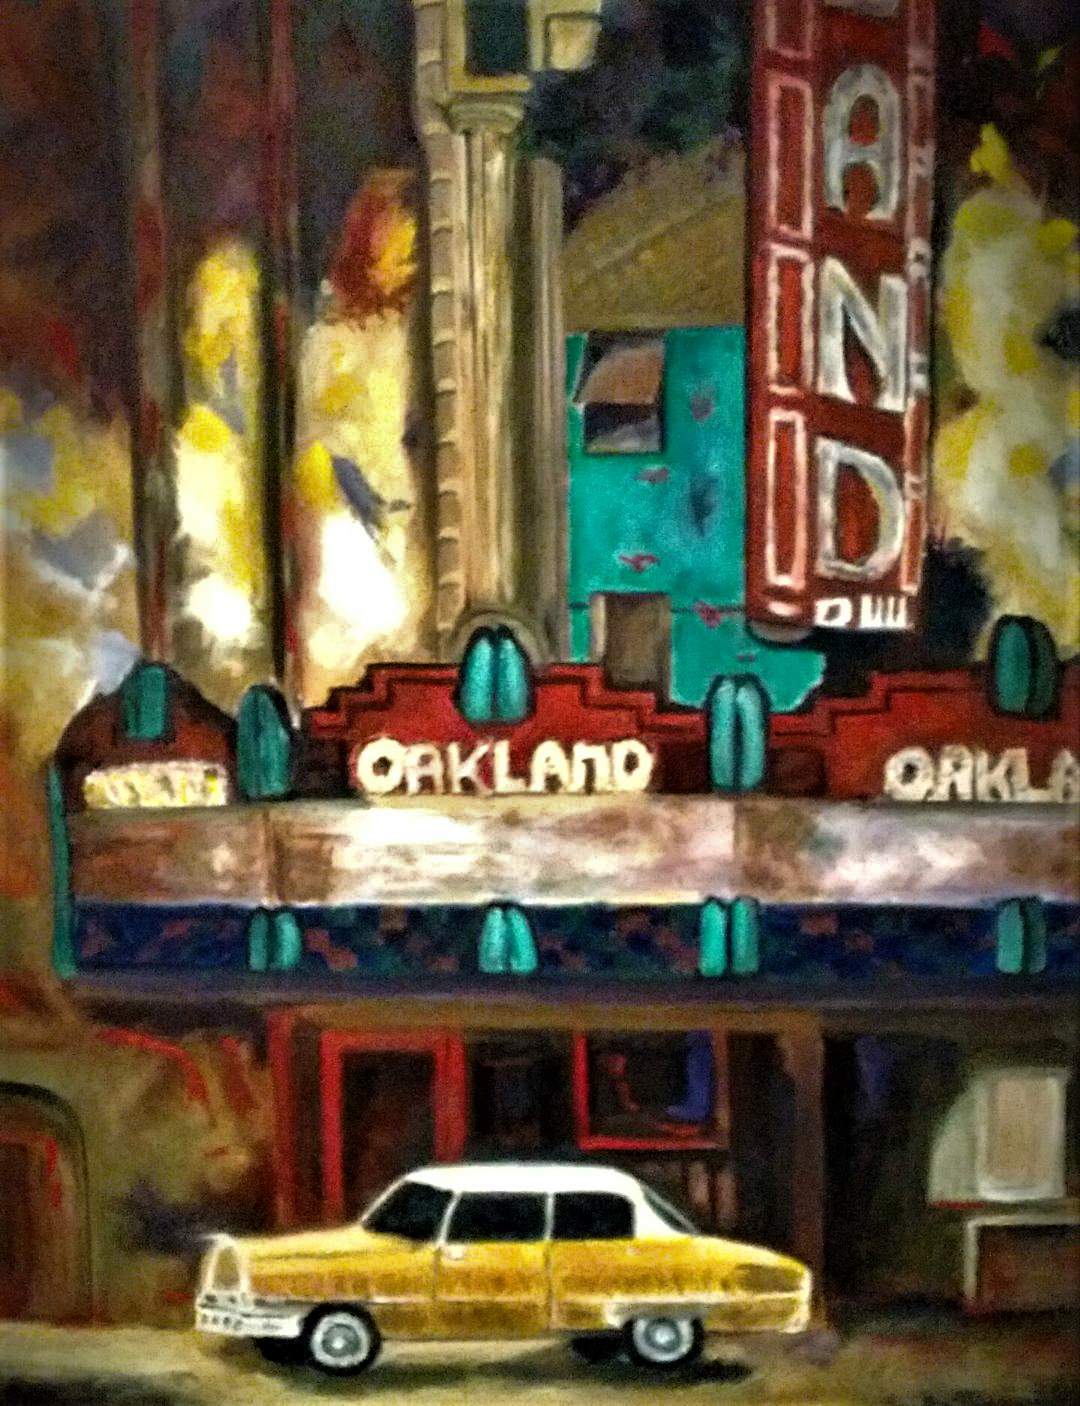 Oakland Theater